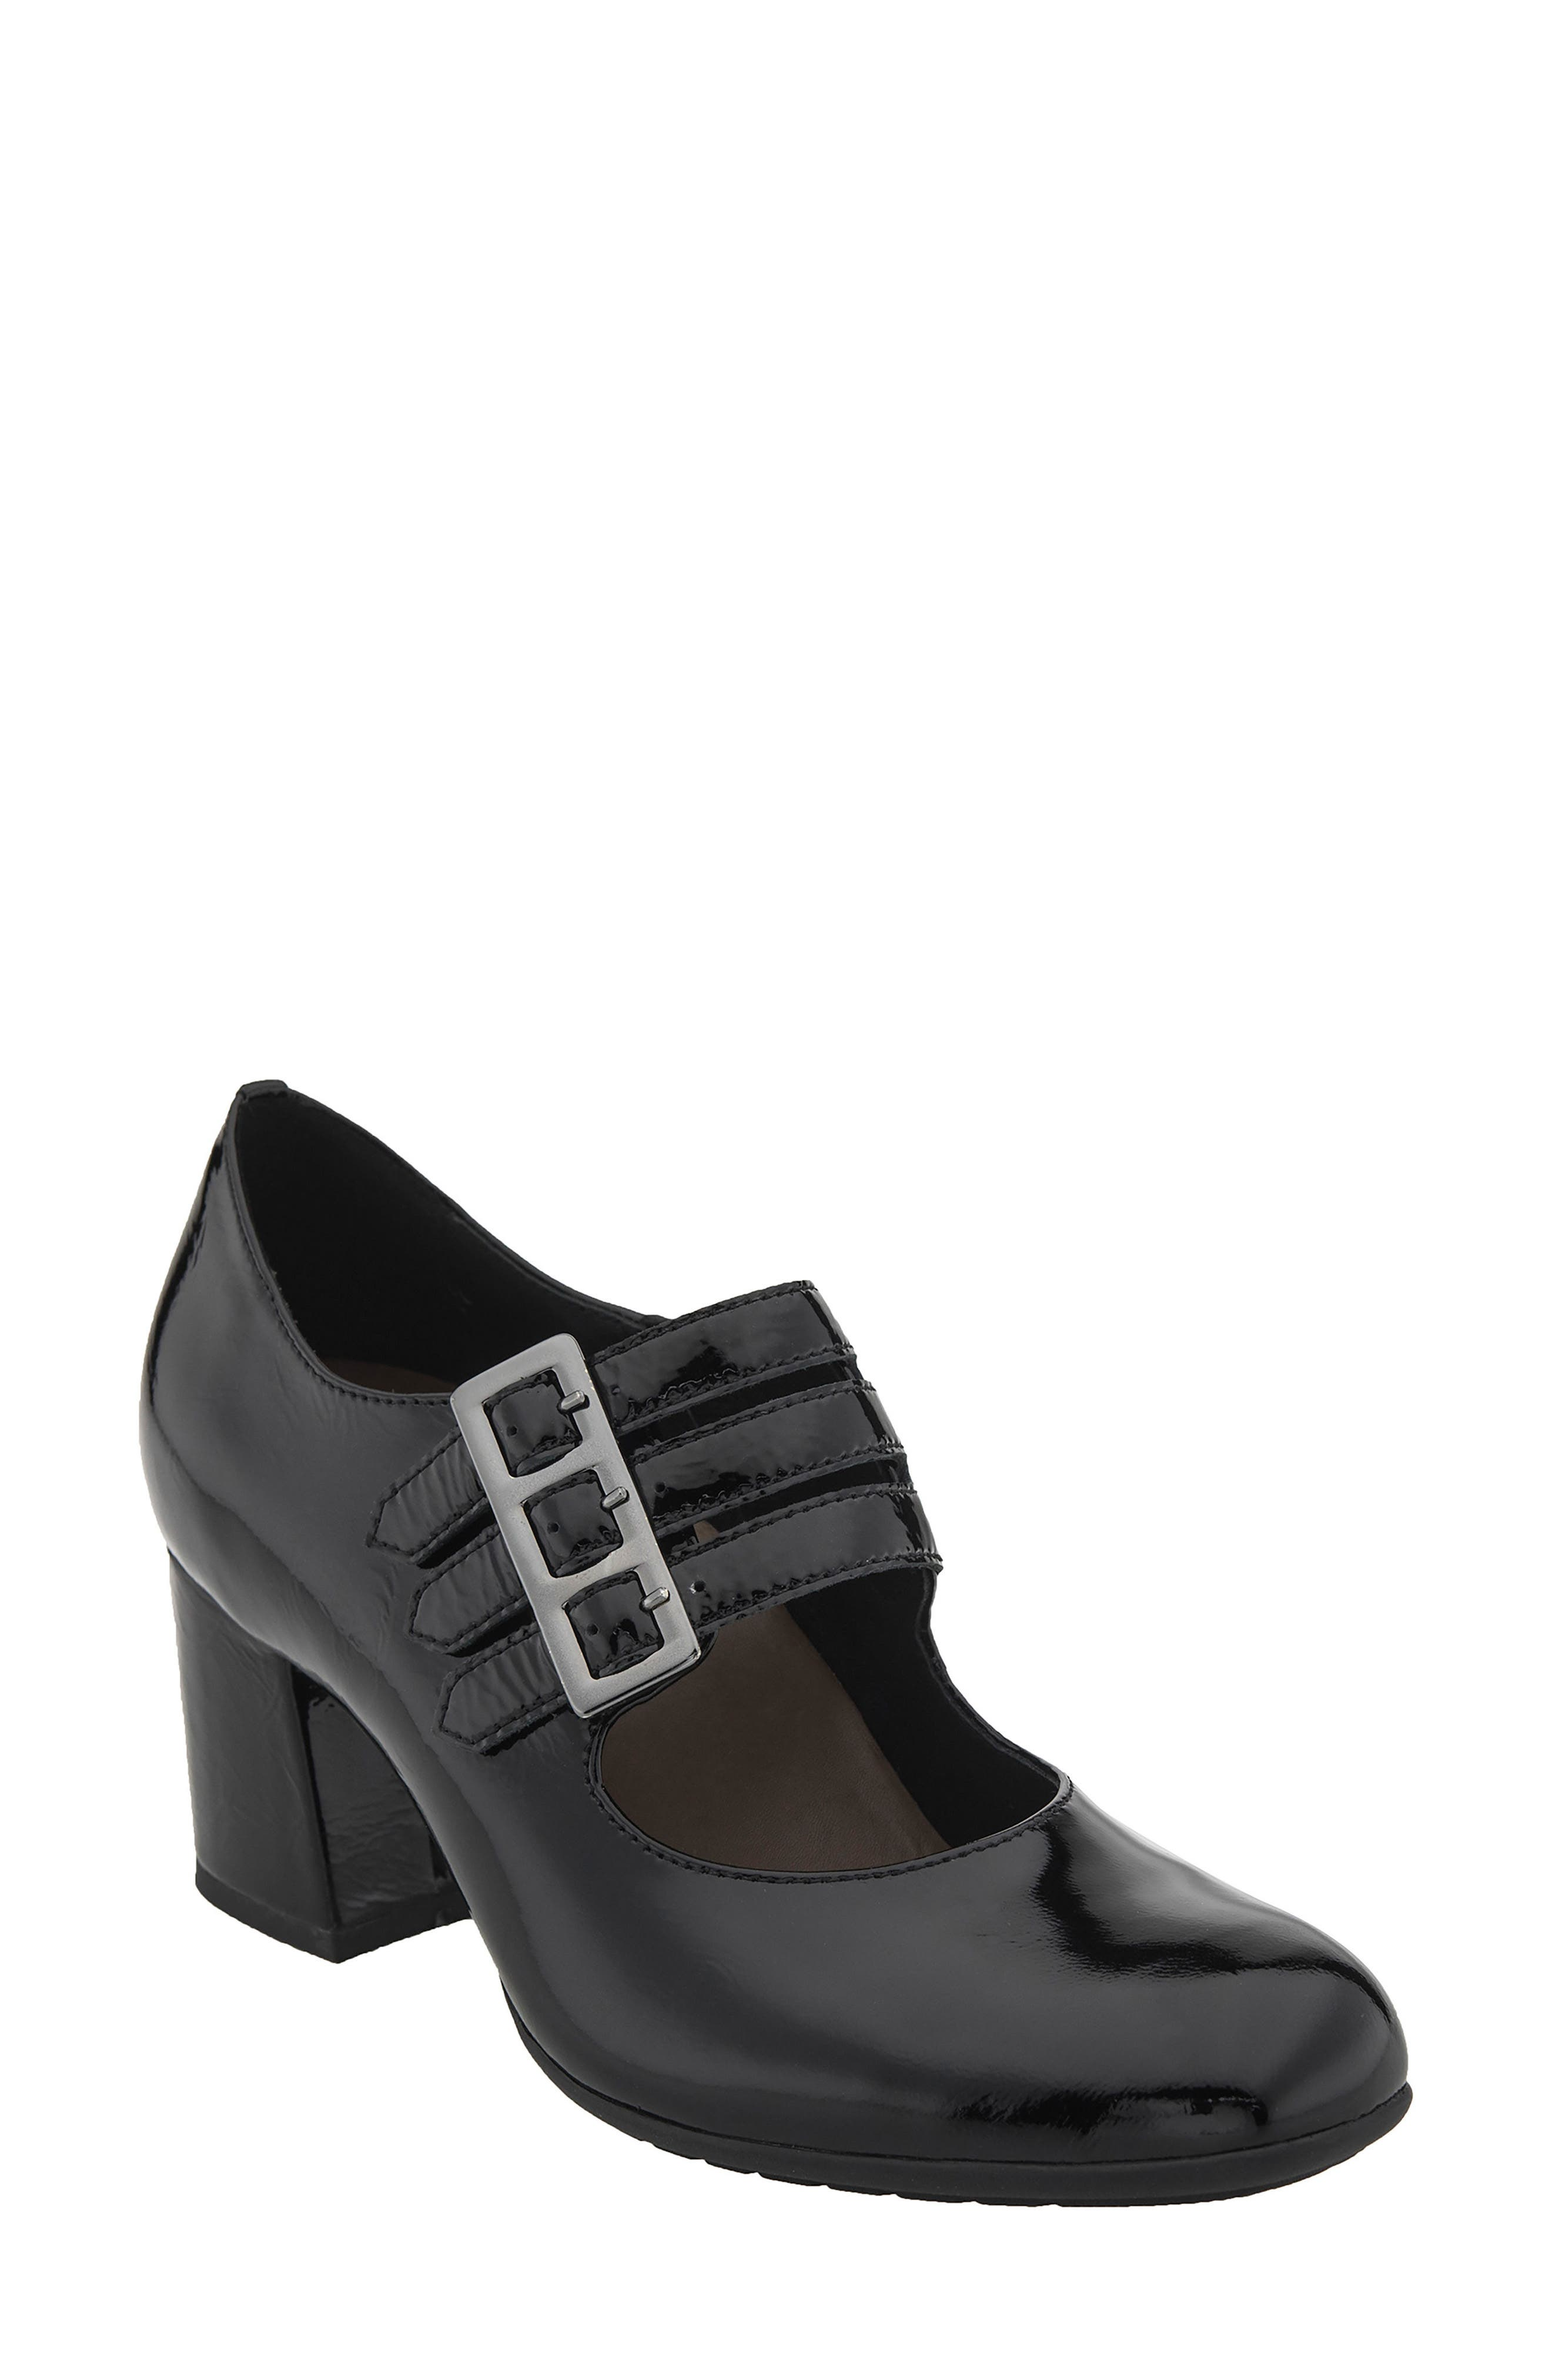 Alternate Image 1 Selected - Earthies® Fortuna Mary Jane Pump (Women)